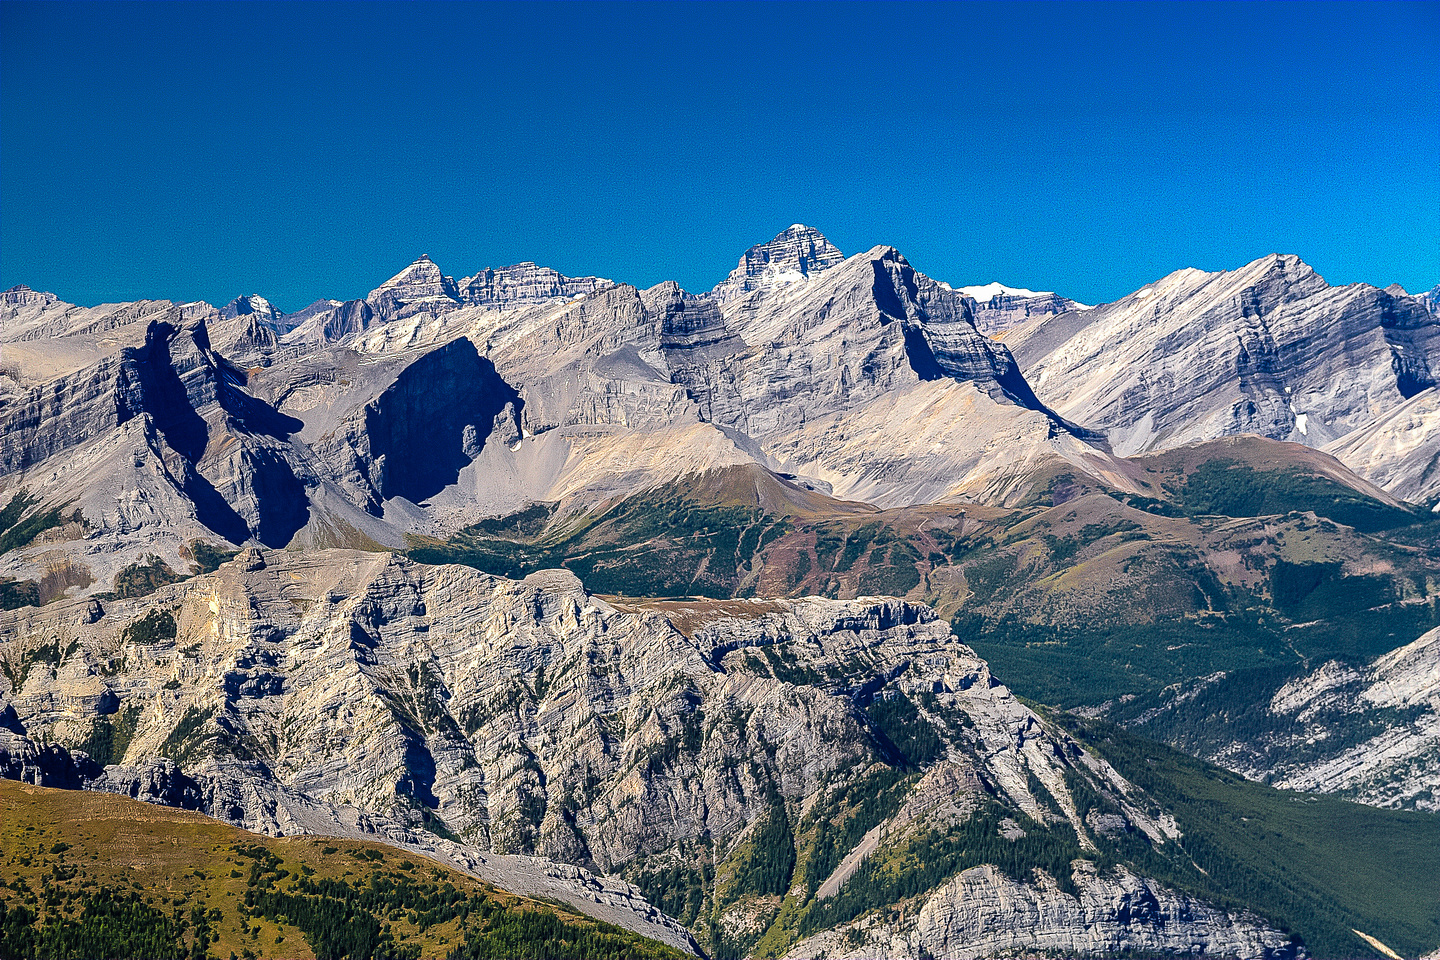 More stunning fall views towards mighty Mount Assiniboine over the line of Fortress, Gusty, Galatea and the Tower.